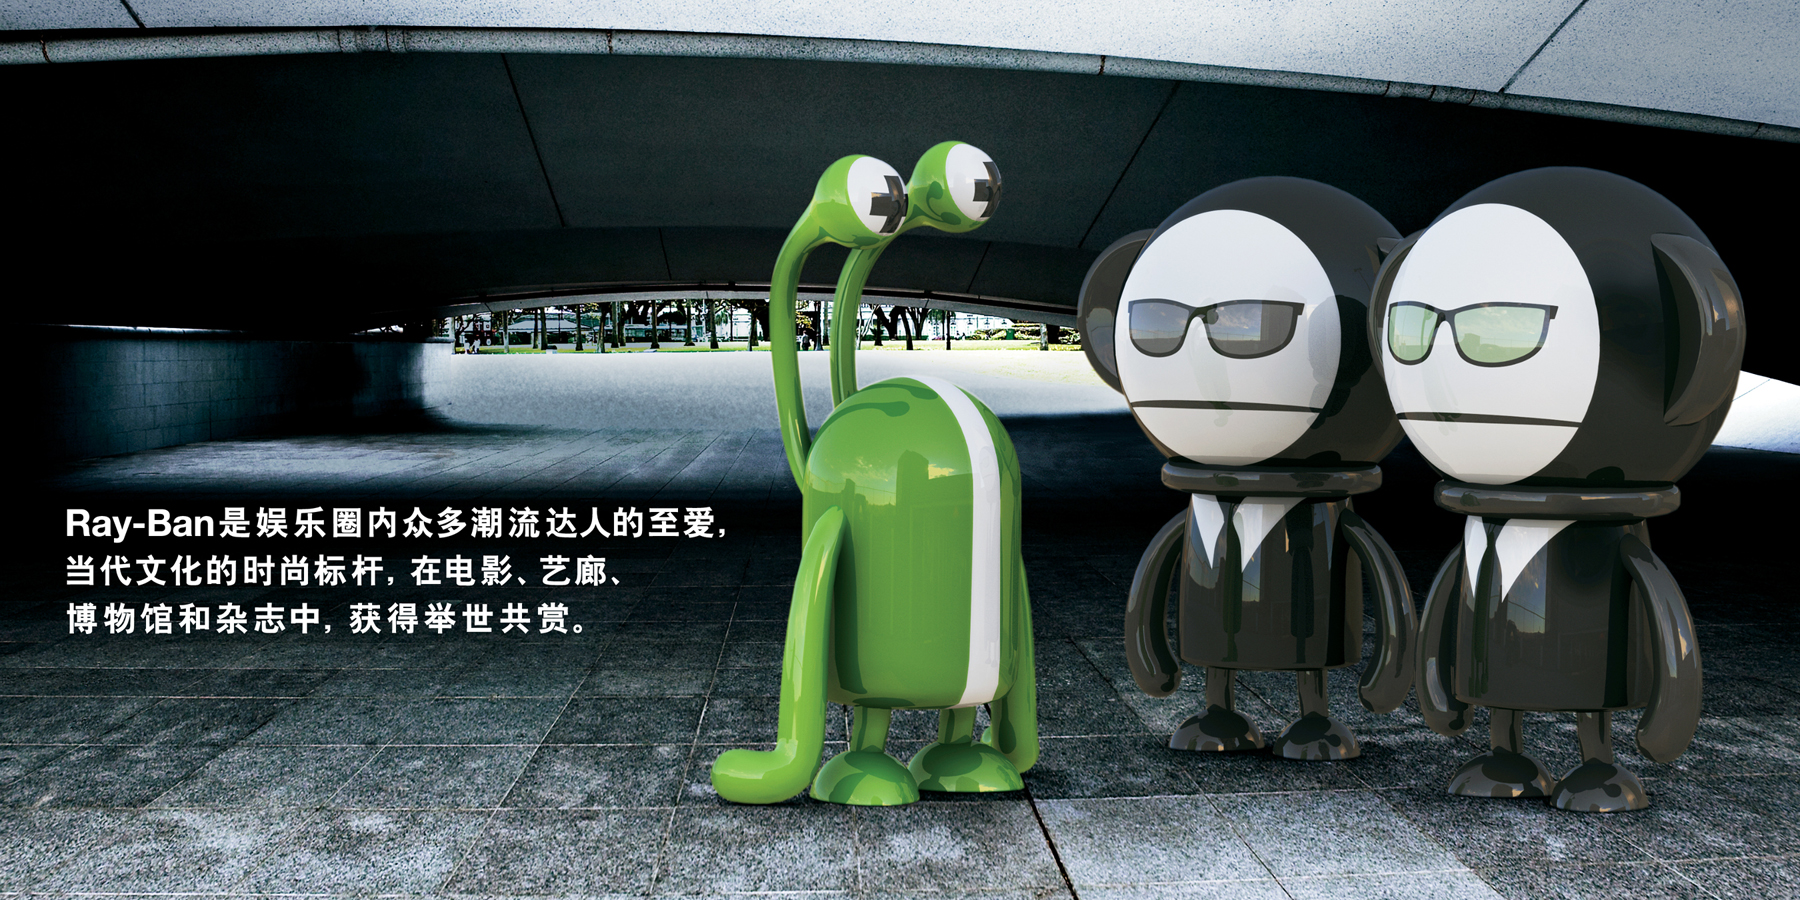 Ray-Ban, Never Hide, Japanese Campaign